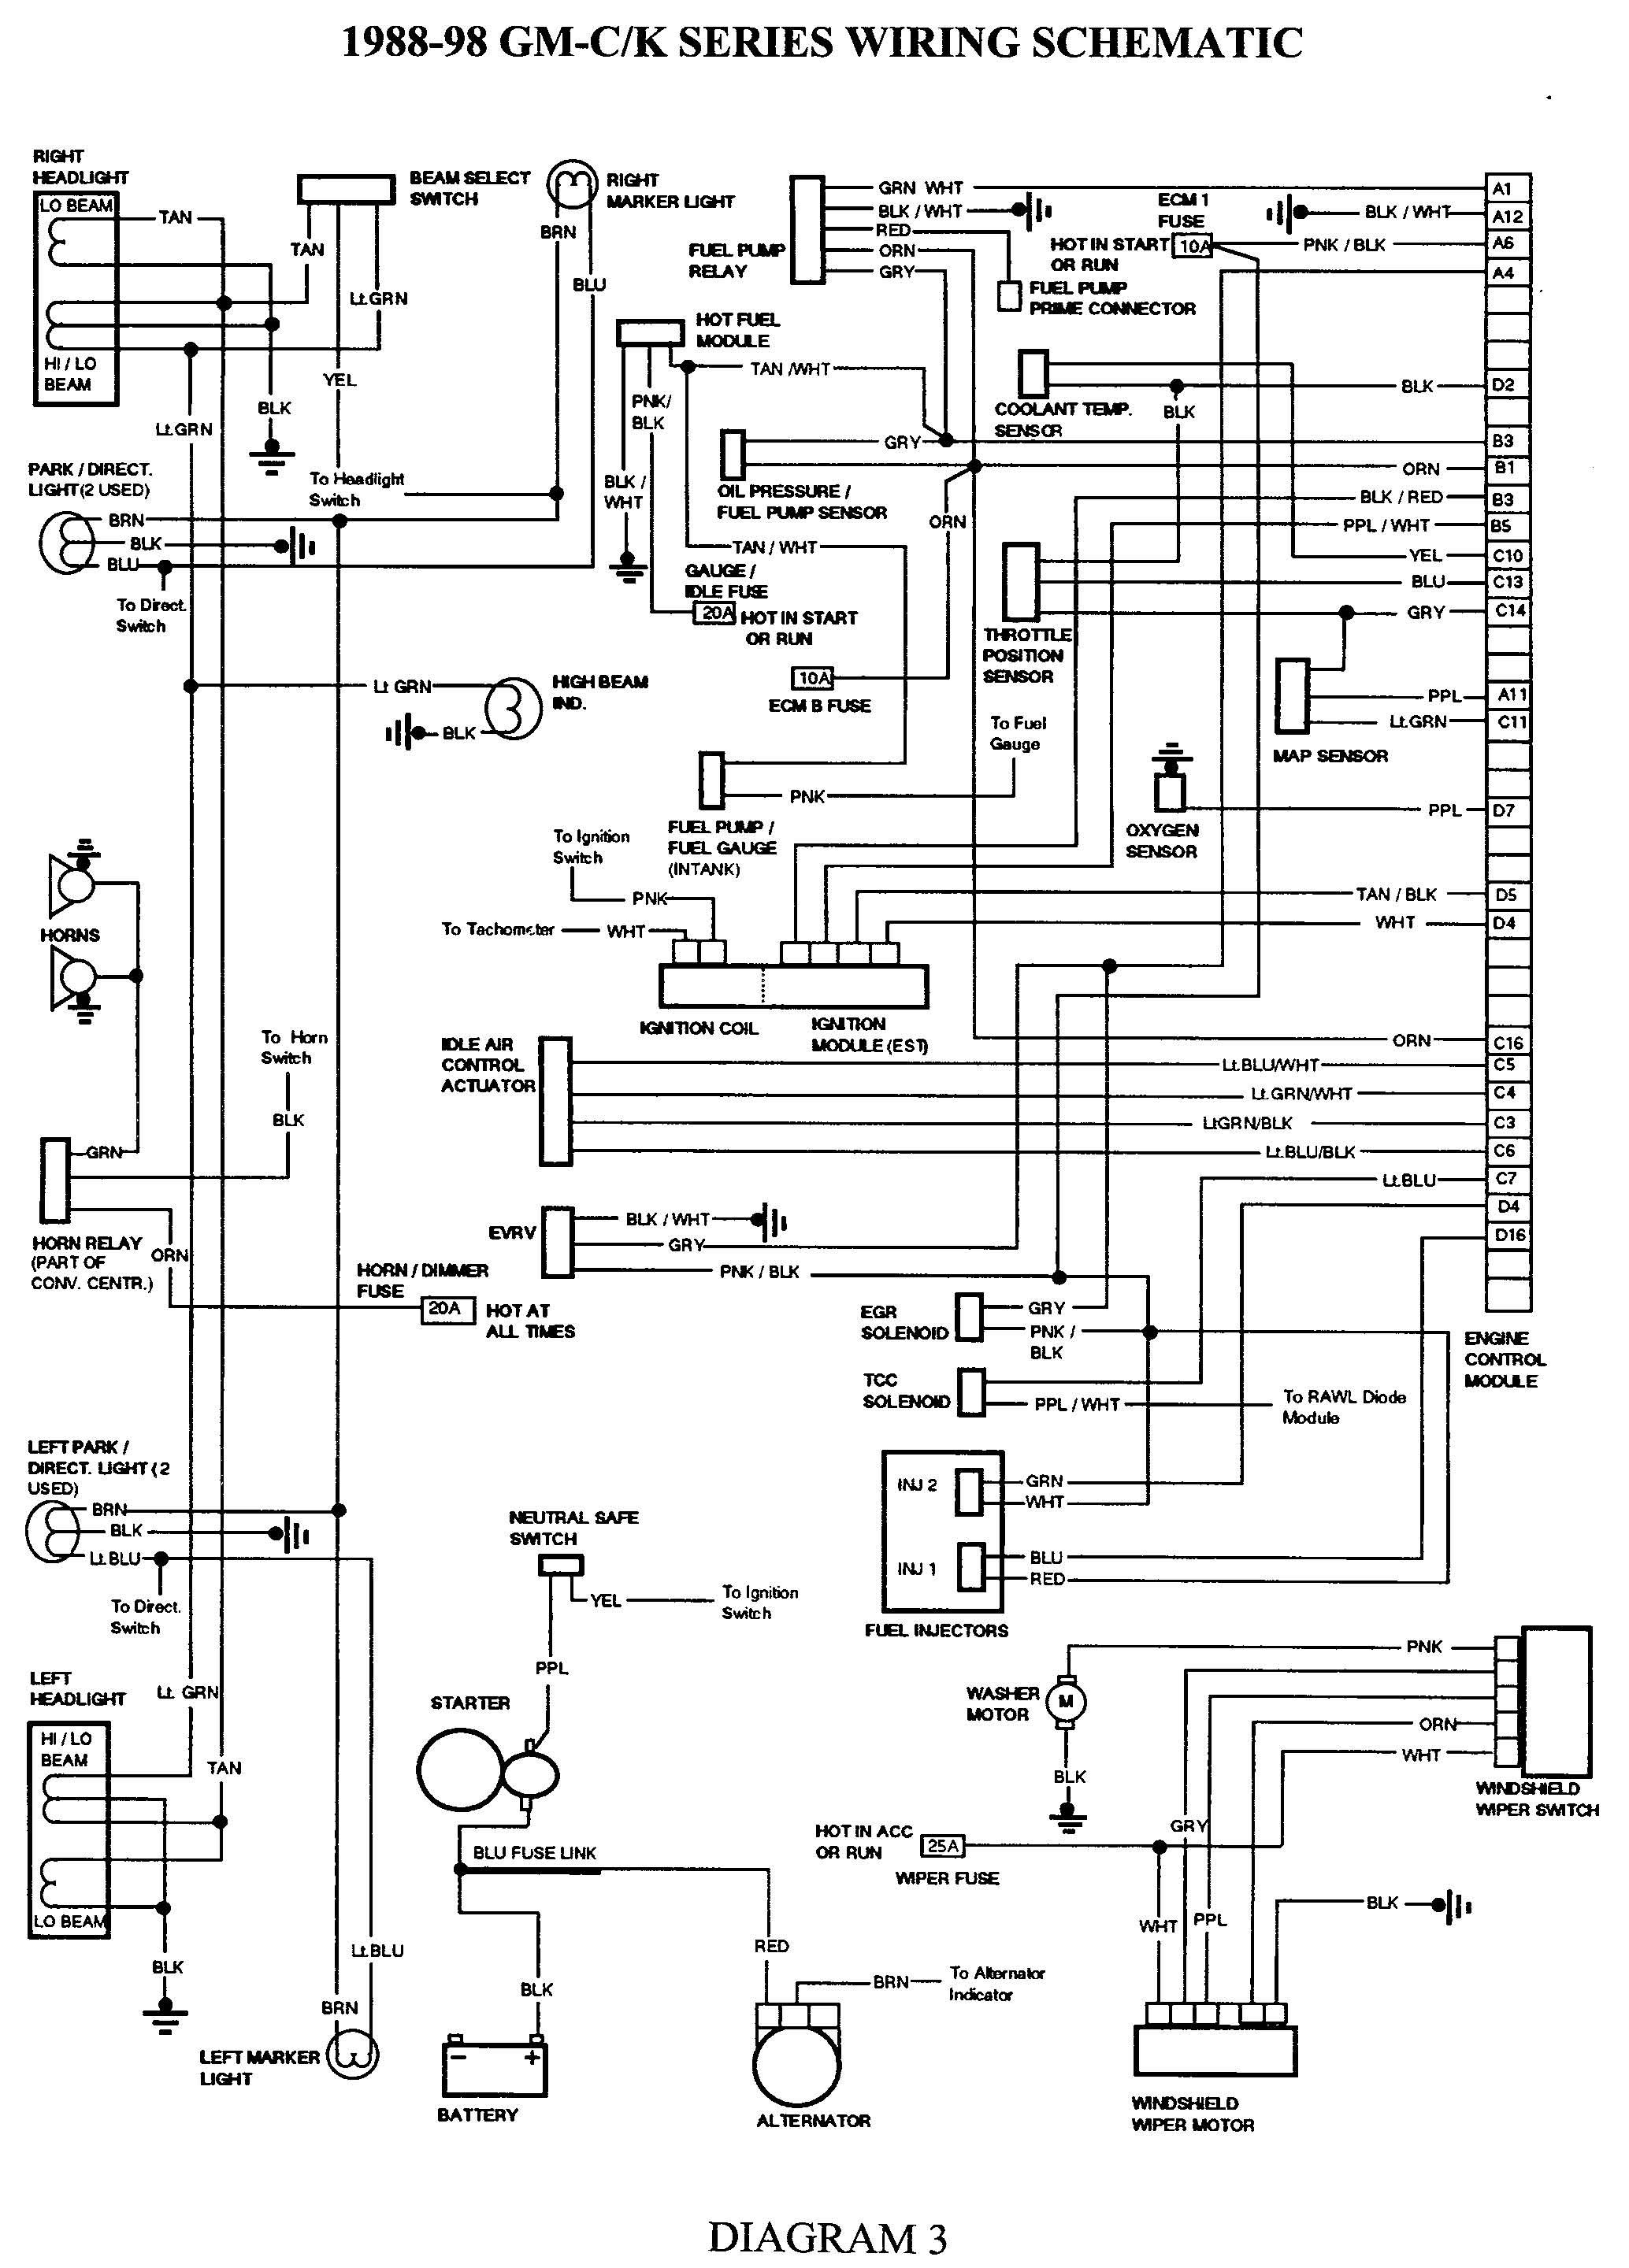 gmc truck wiring diagrams on gm wiring harness diagram 88 98 kc 56 chevy wiring diagram gm wiring harness diagram [ 2068 x 2880 Pixel ]